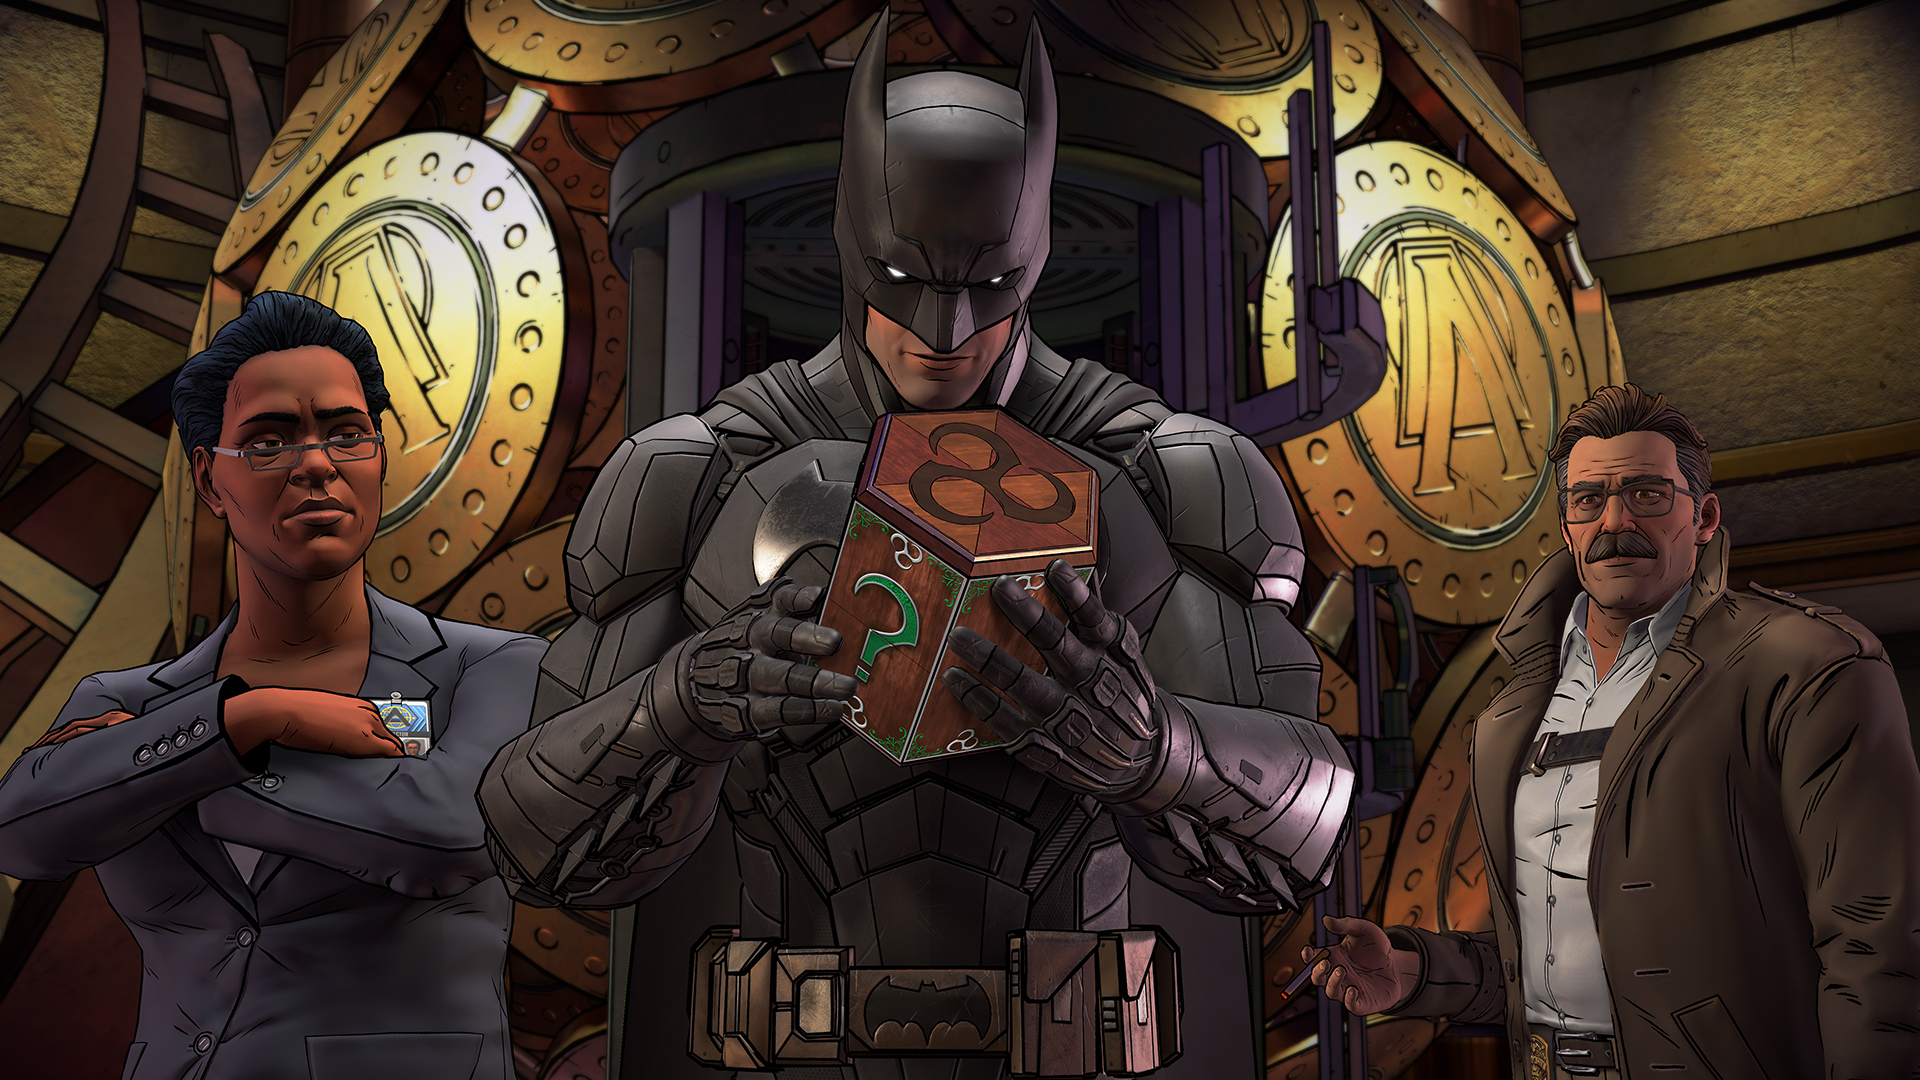 Amanda Waller, Batman and Commissioner Gordon inspect Riddler's puzzle box in Batman: The Enemy Within.